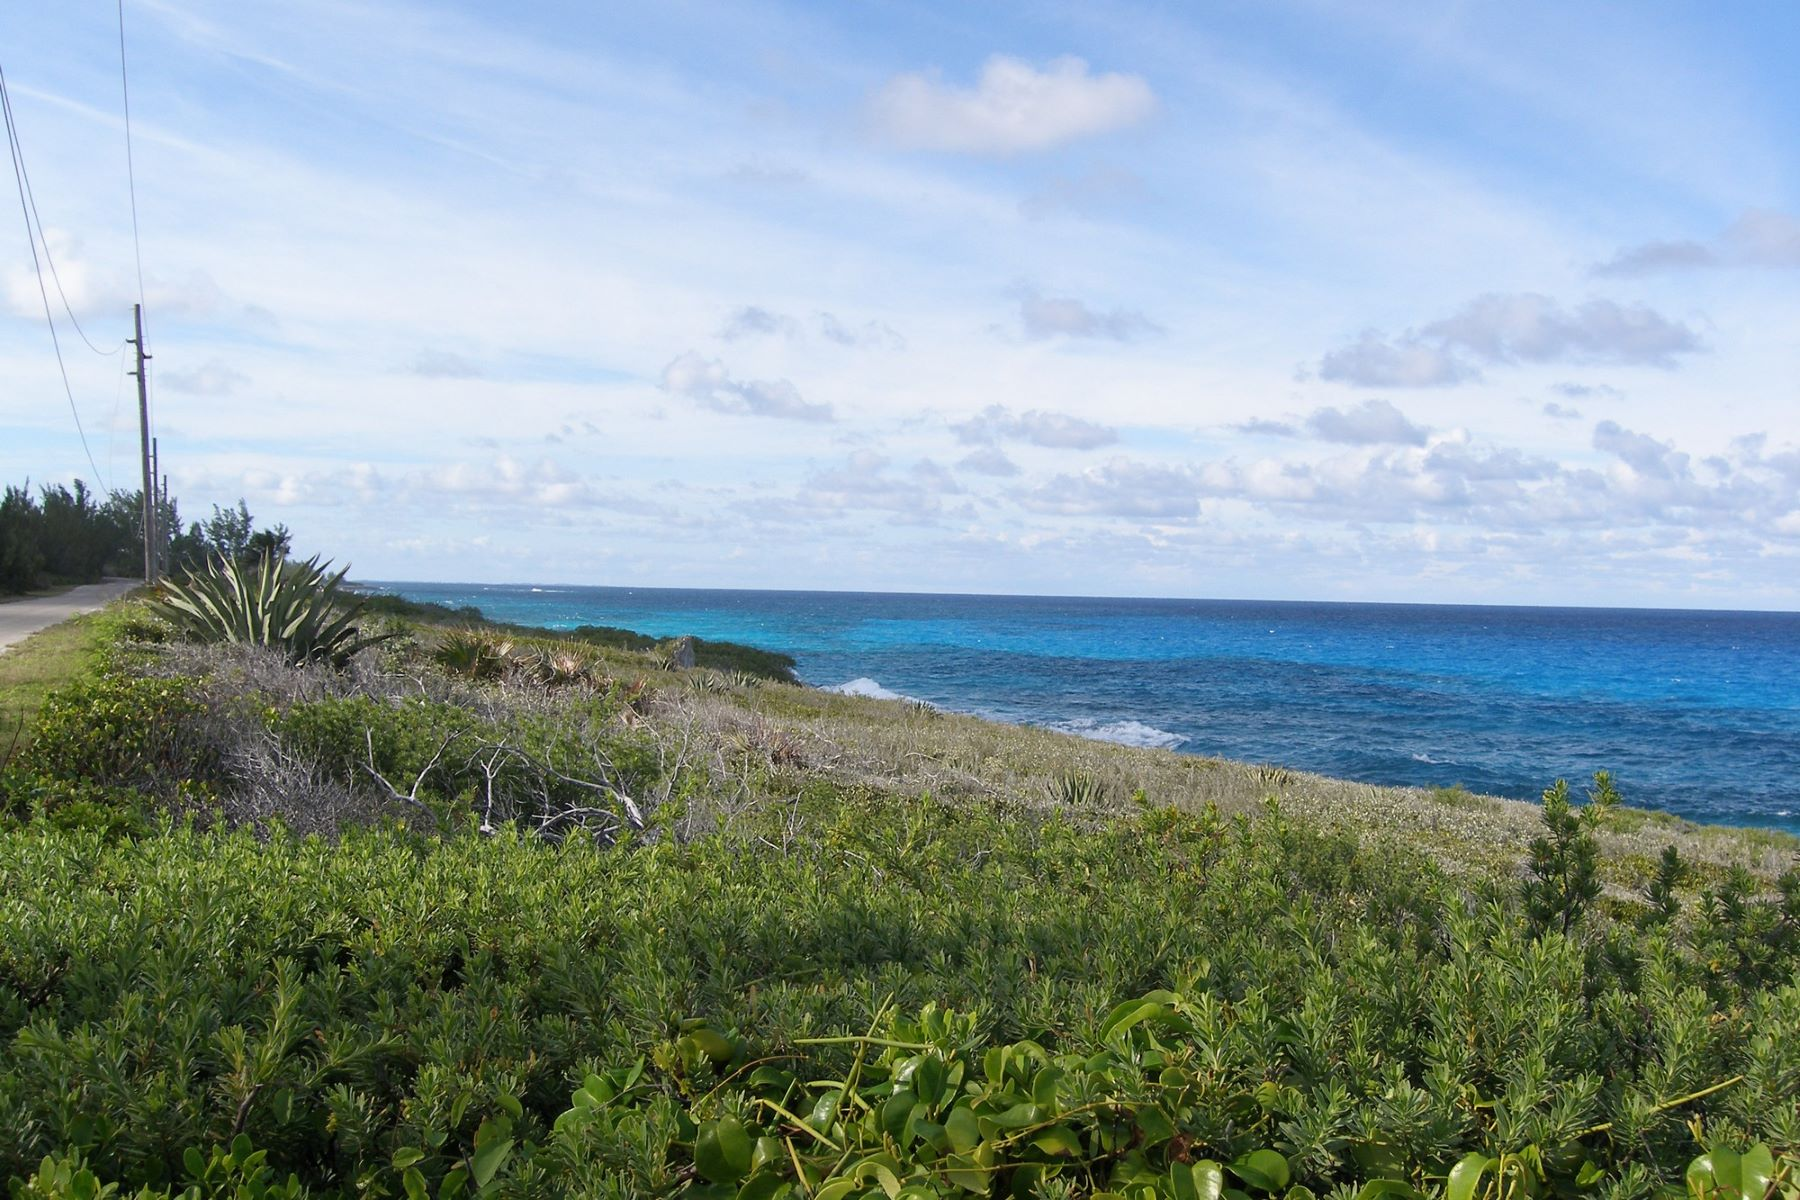 Terreno por un Venta en Lot 12, Block 7, Section A Rainbow Bay, Eleuthera Bahamas